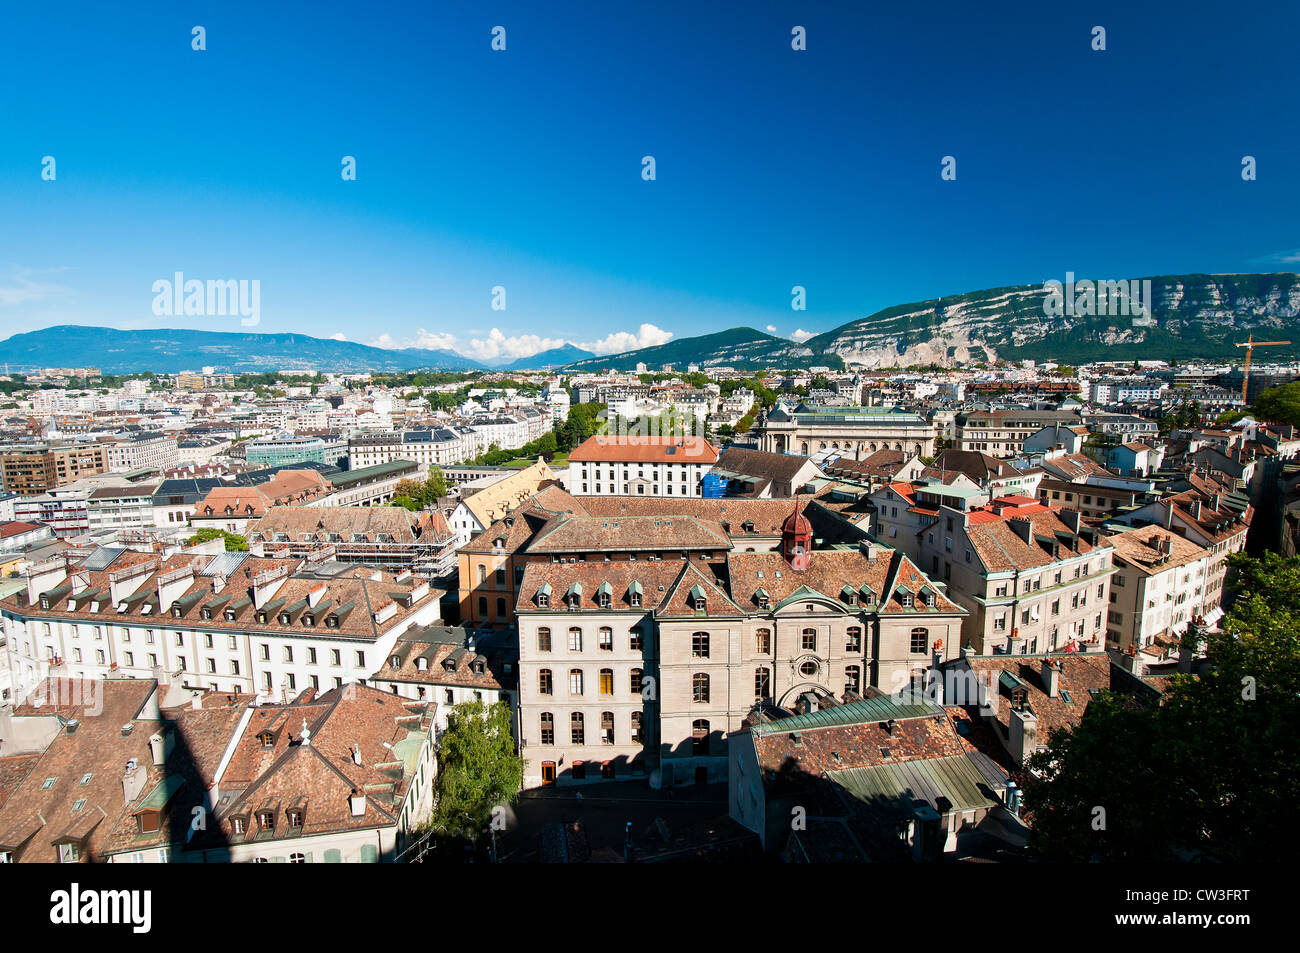 Panoramic view over city rooftops, Geneva, Switzerland - Stock Image